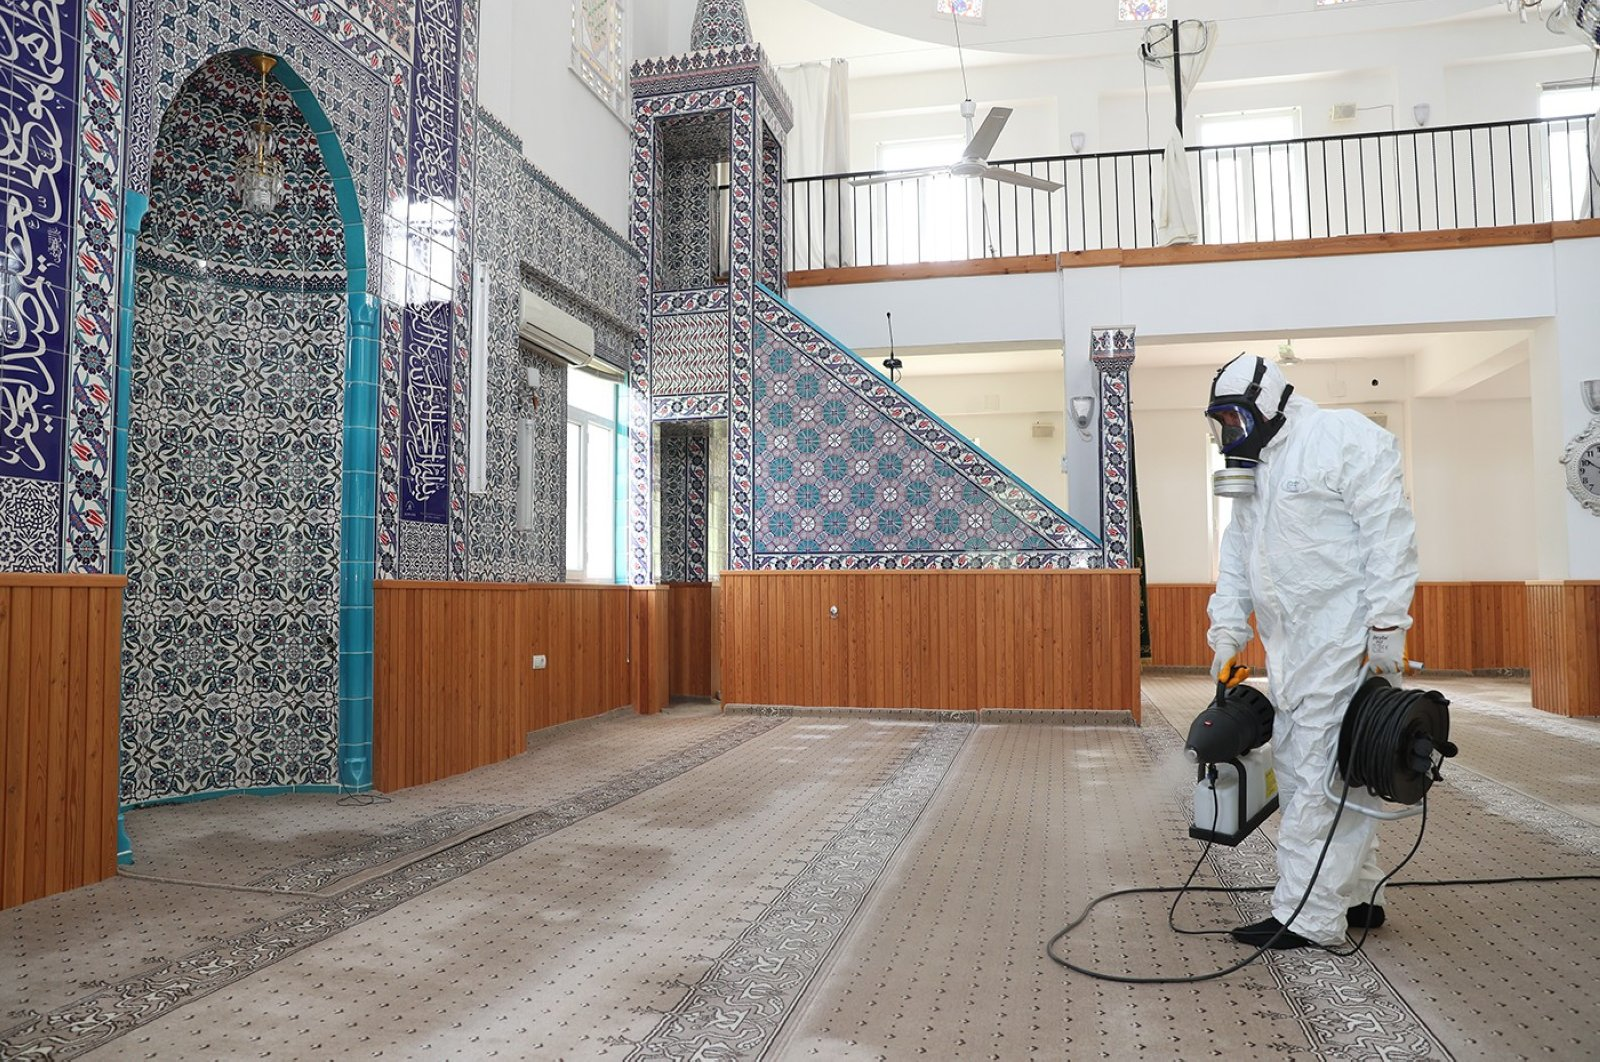 A worker disinfects a mosque in Denizli, Turkey, May 21, 2020. (İHA Photo)